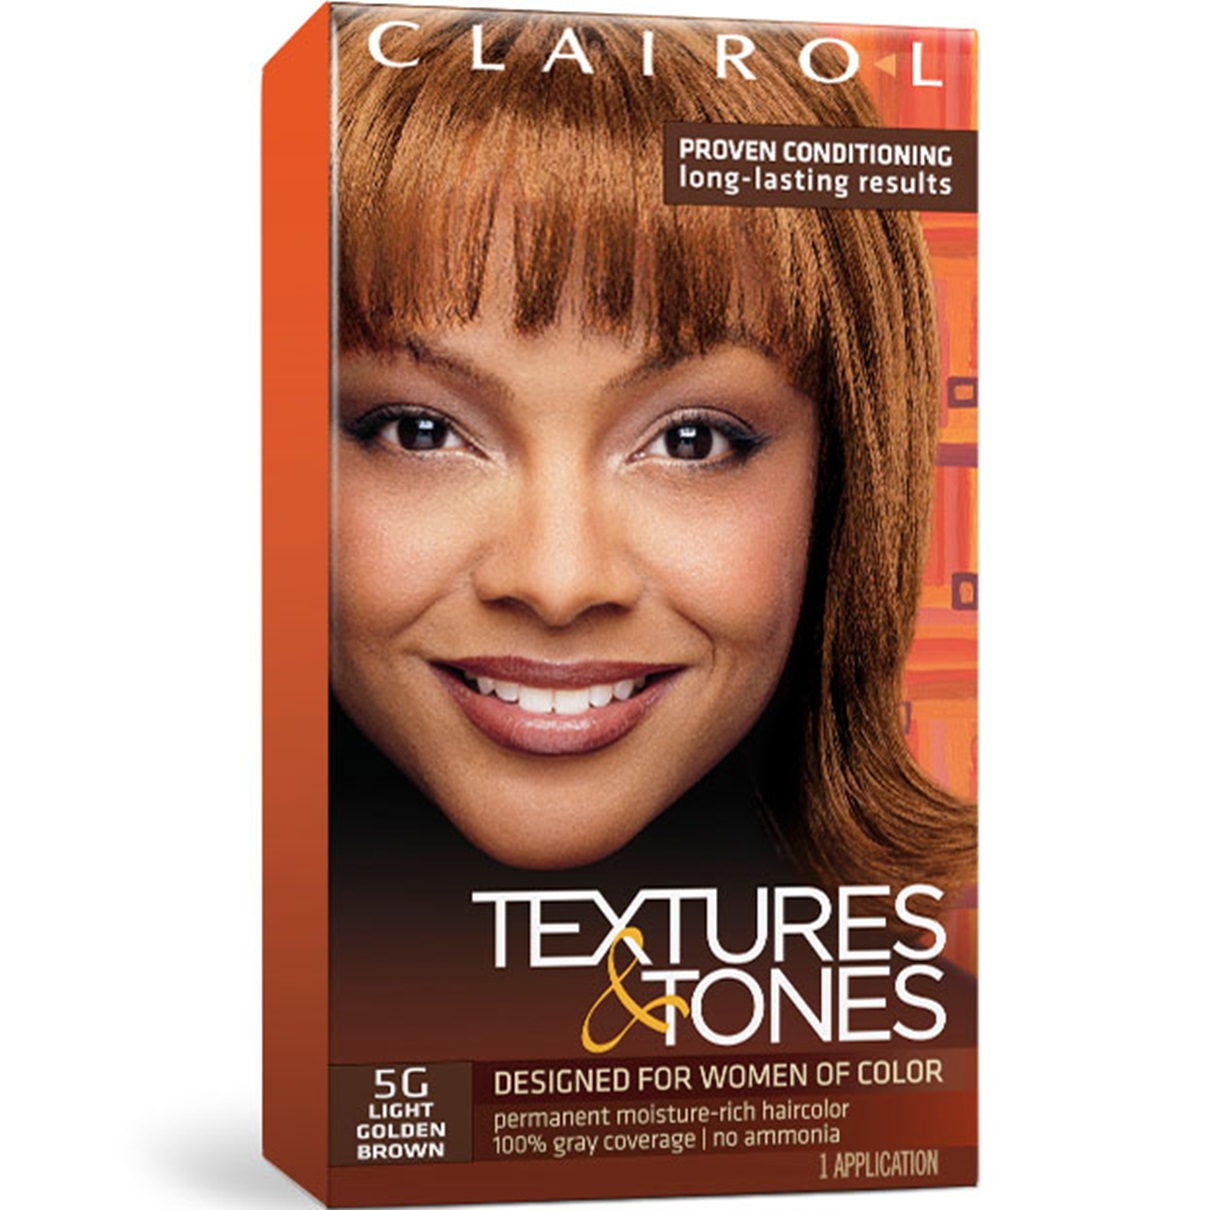 Clairol Textures Amp Tones Permanent Hair Color Dye Kit 1